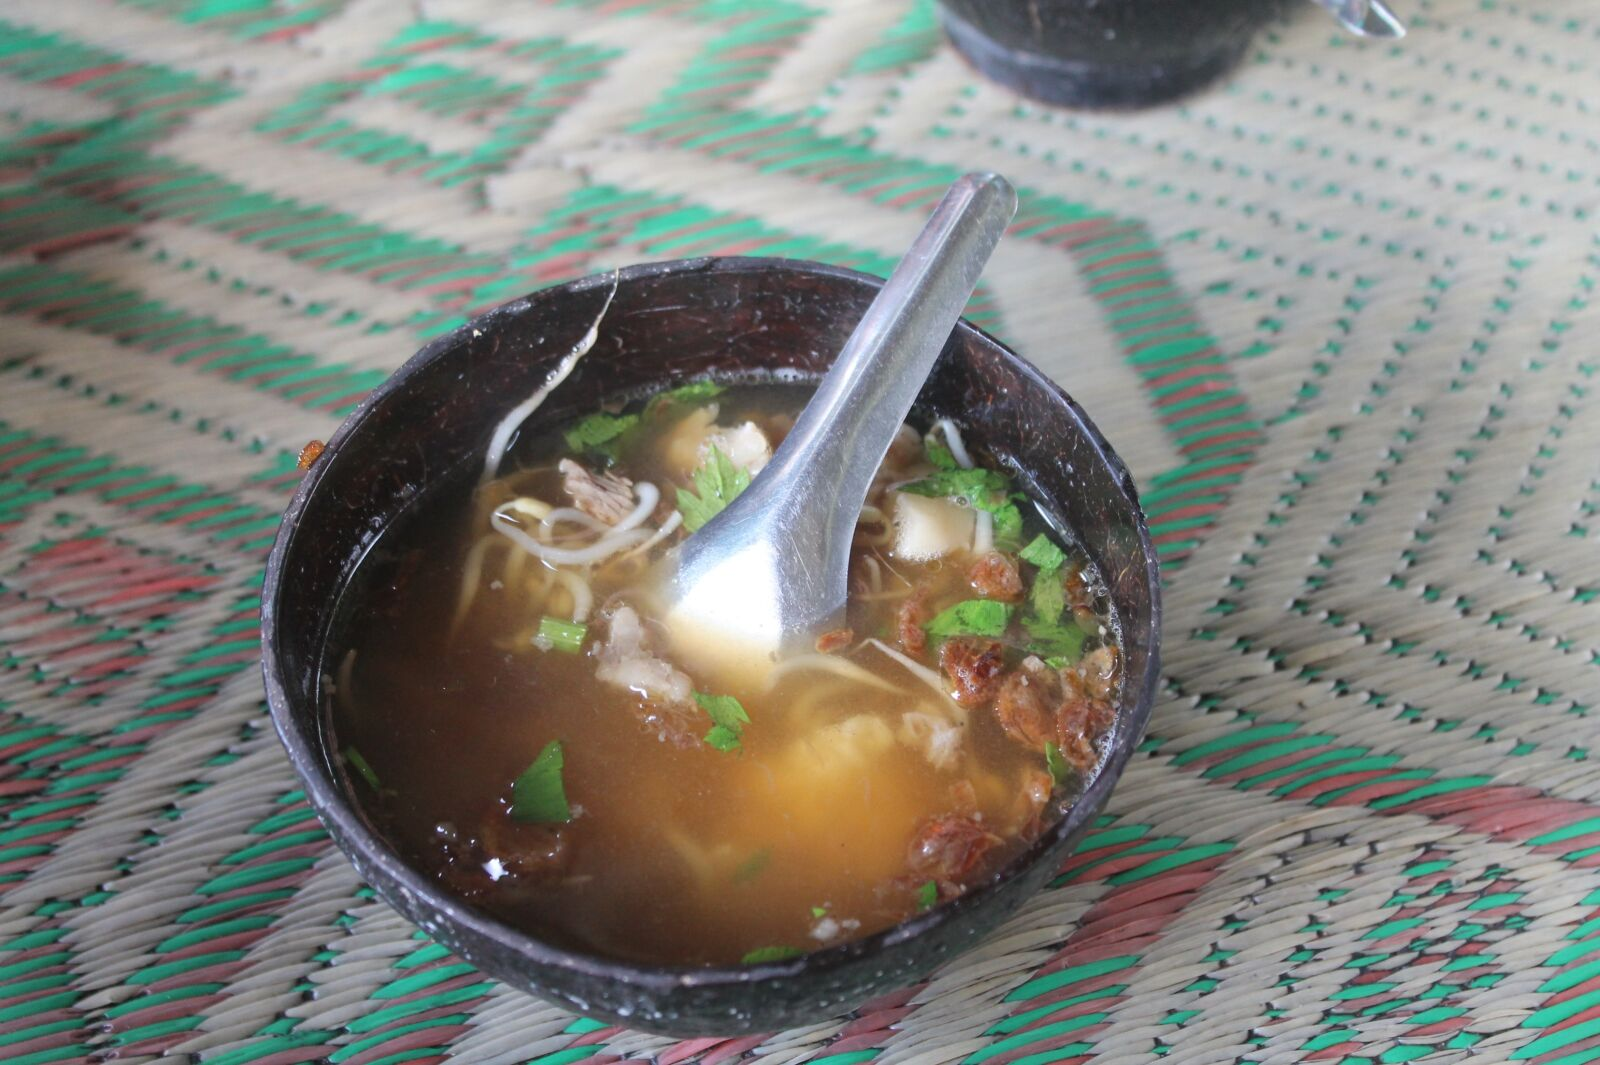 """Canon EOS 1100D (EOS Rebel T3 / EOS Kiss X50) sample photo. """"Soto, food, indonesian"""" photography"""